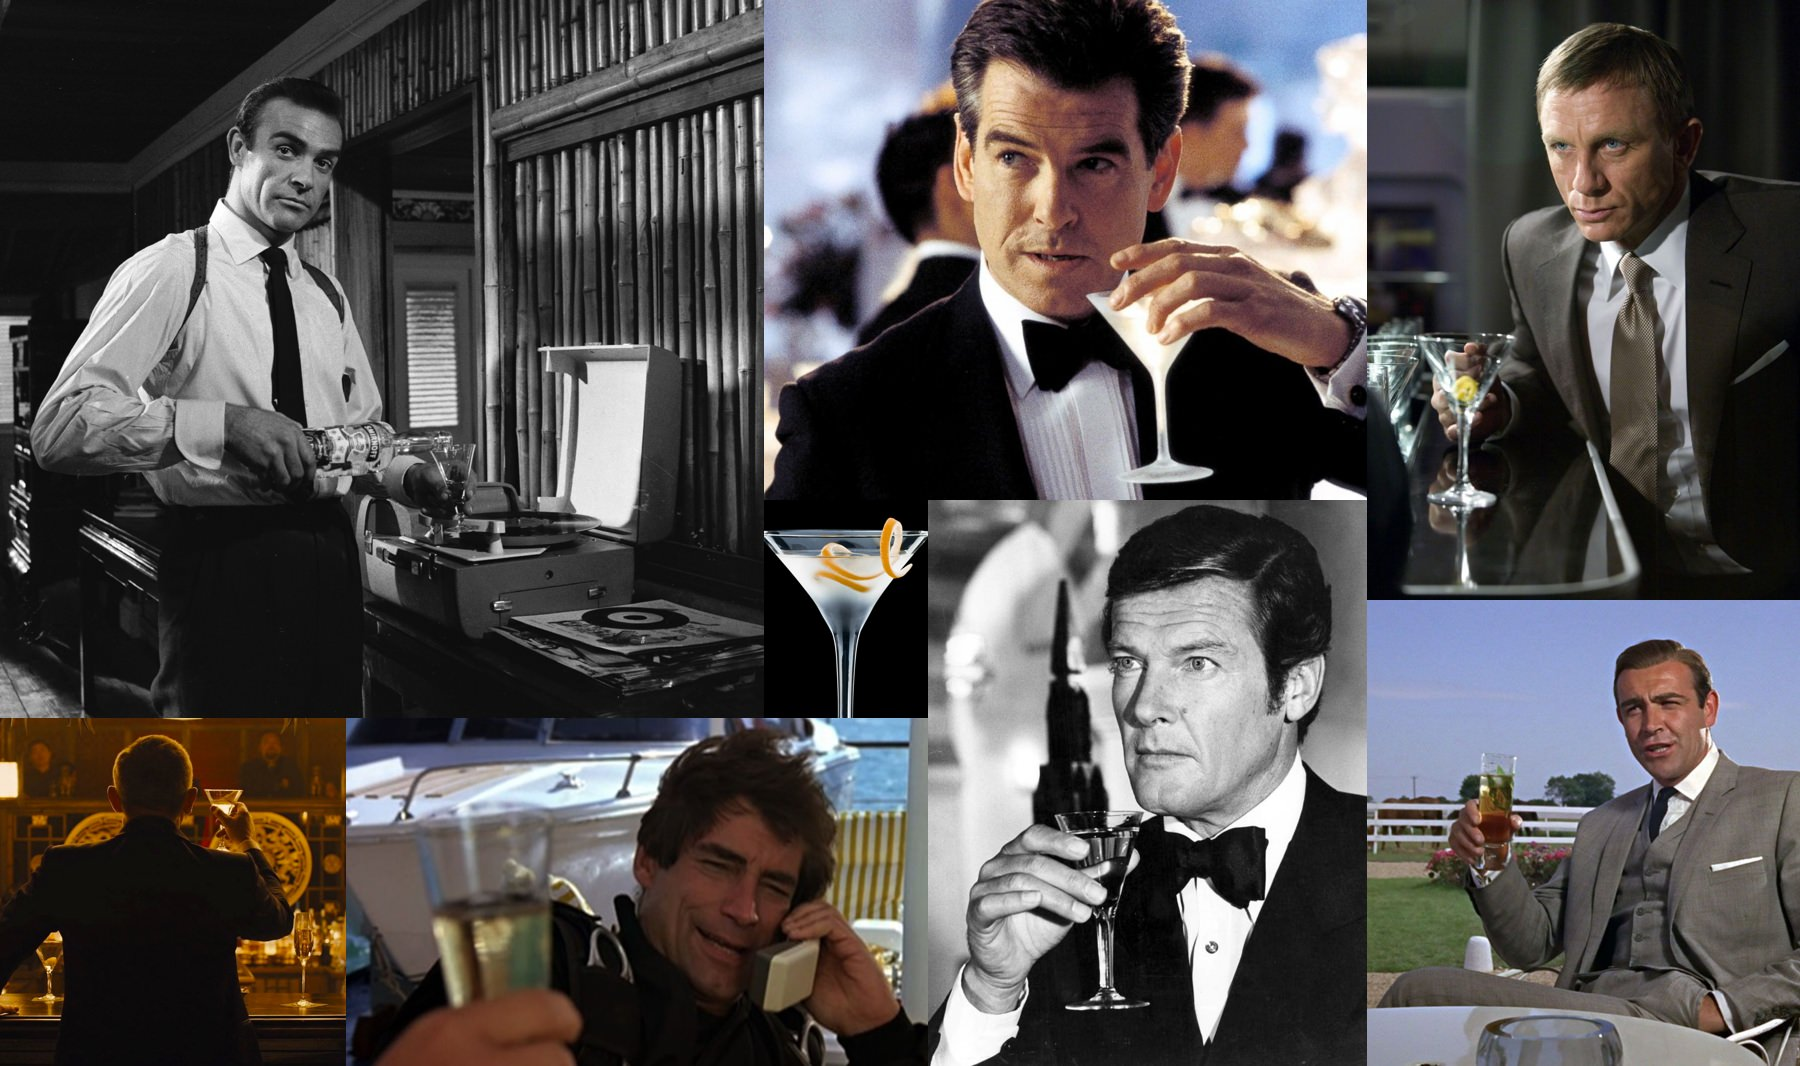 james-bond-martini-cocktail-movie.jpg